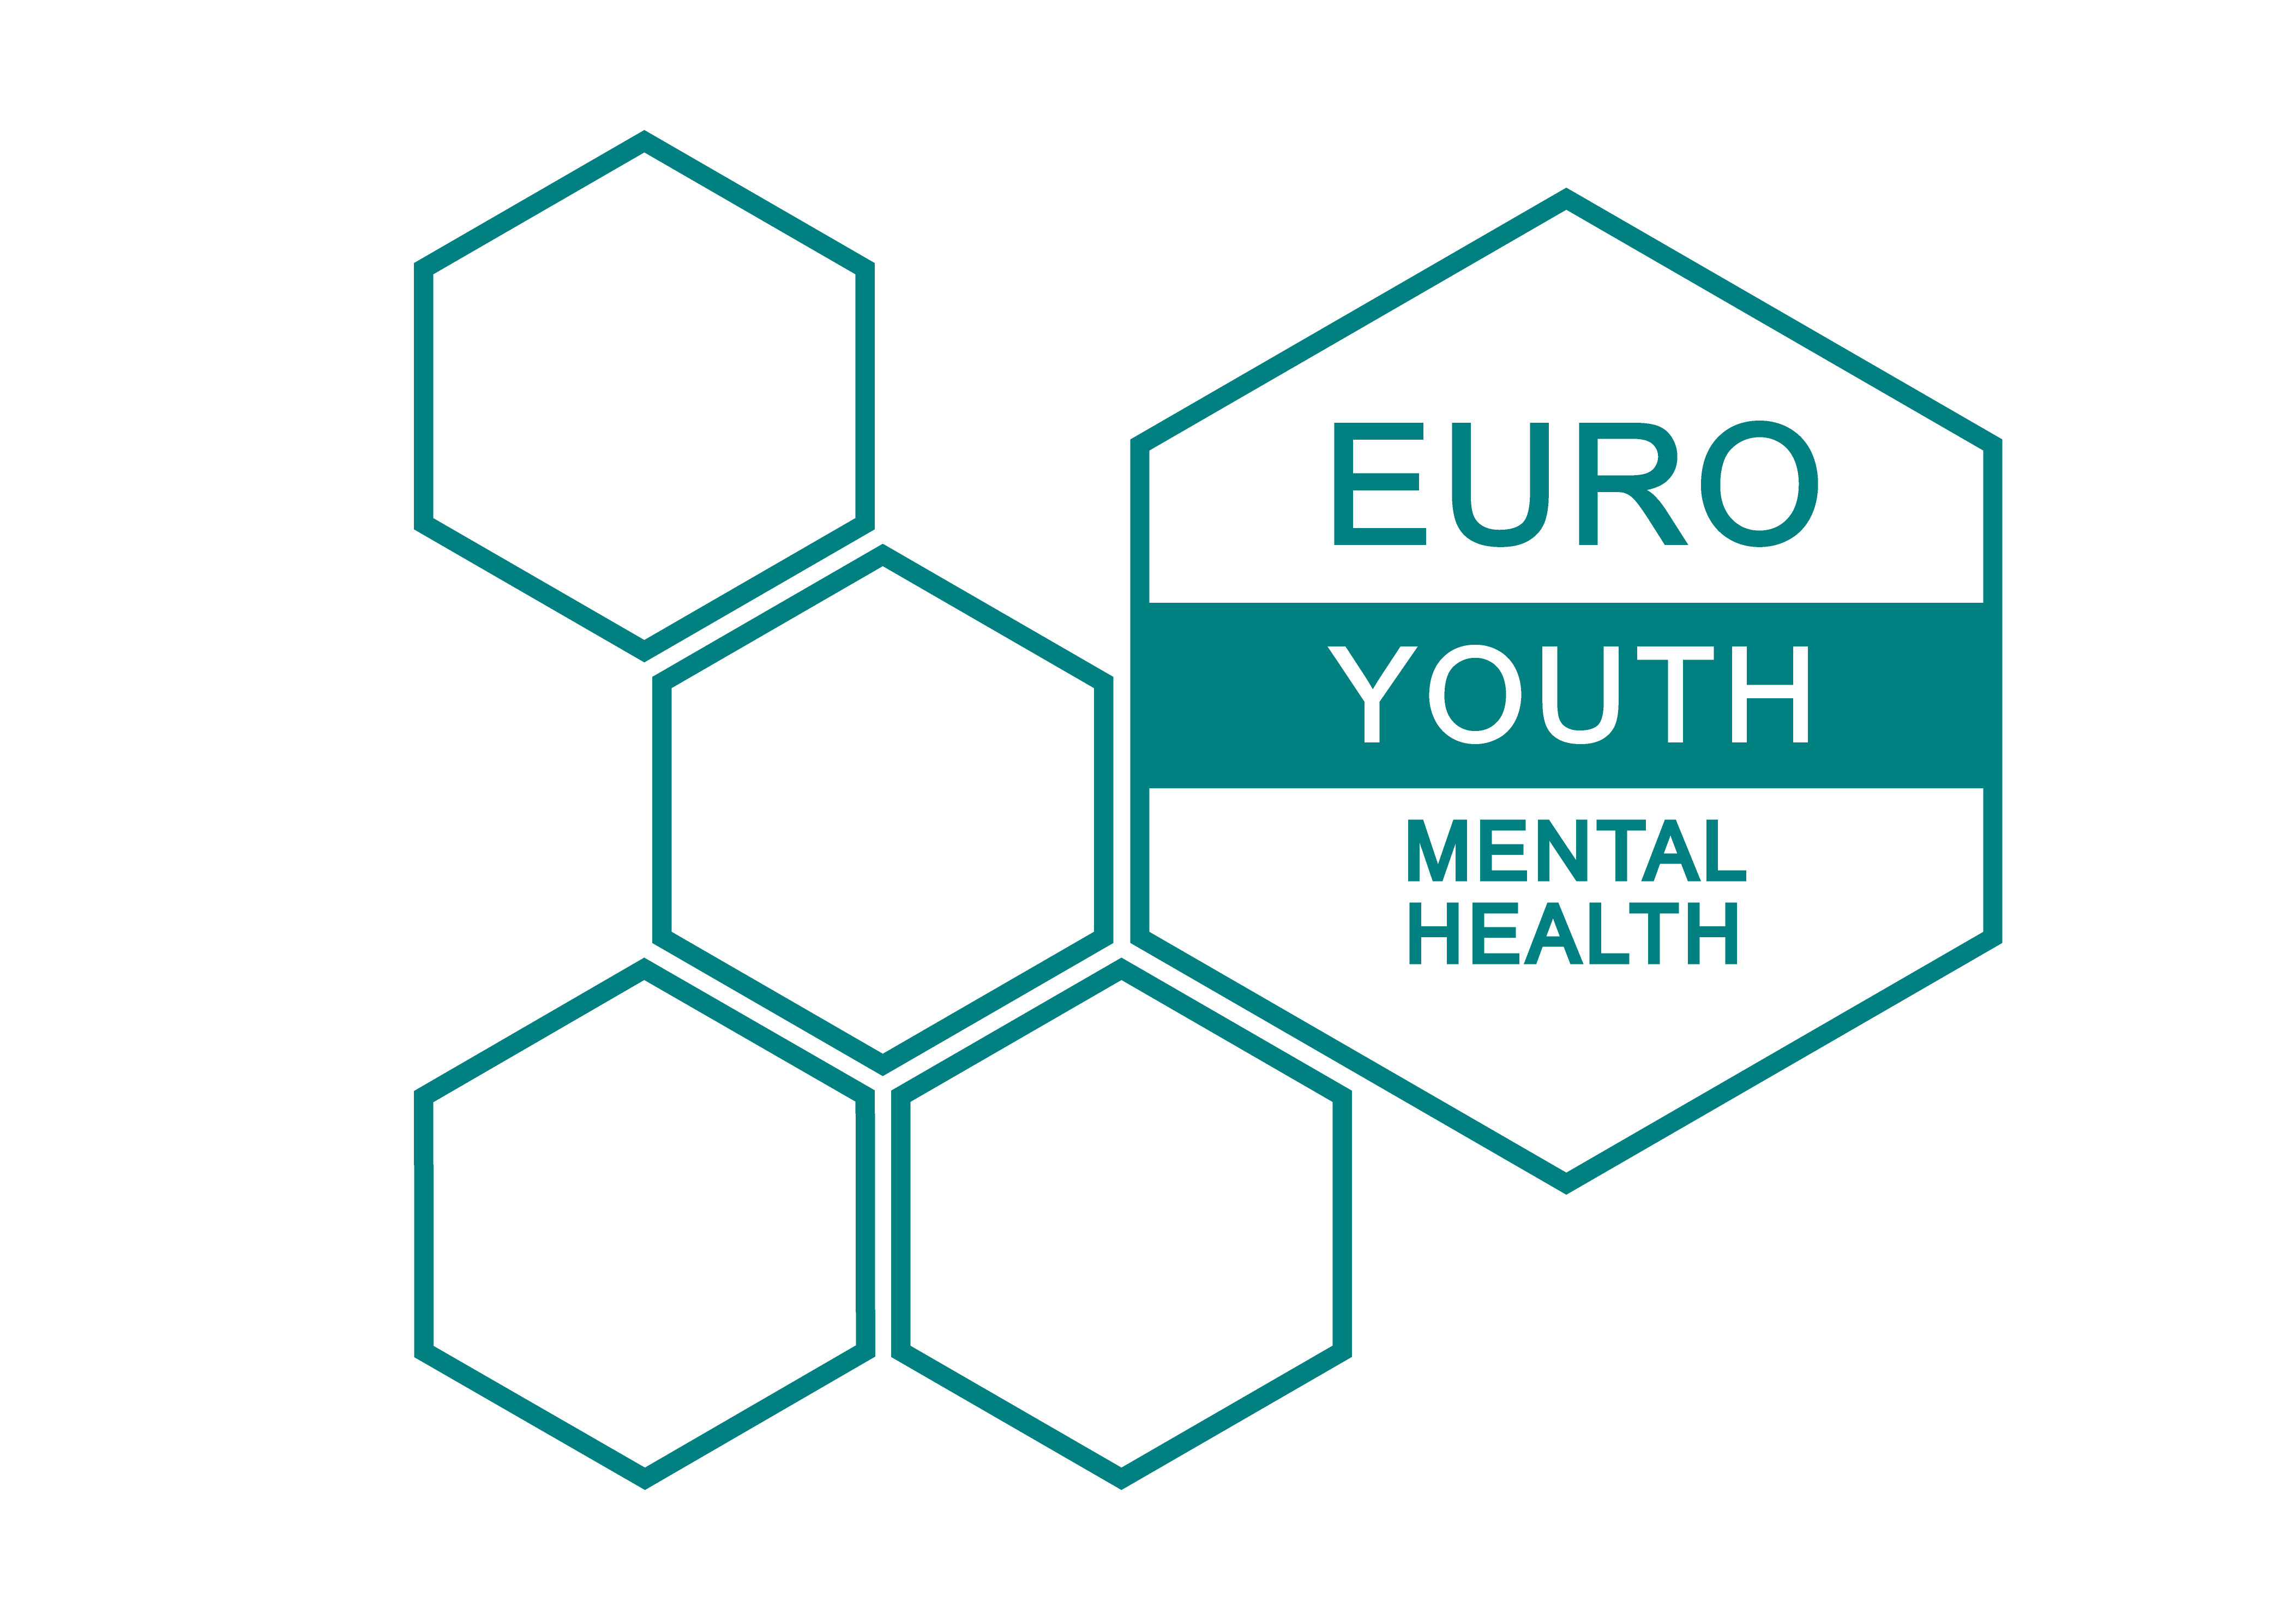 Euro Youth Mental Health (EYMH) logo